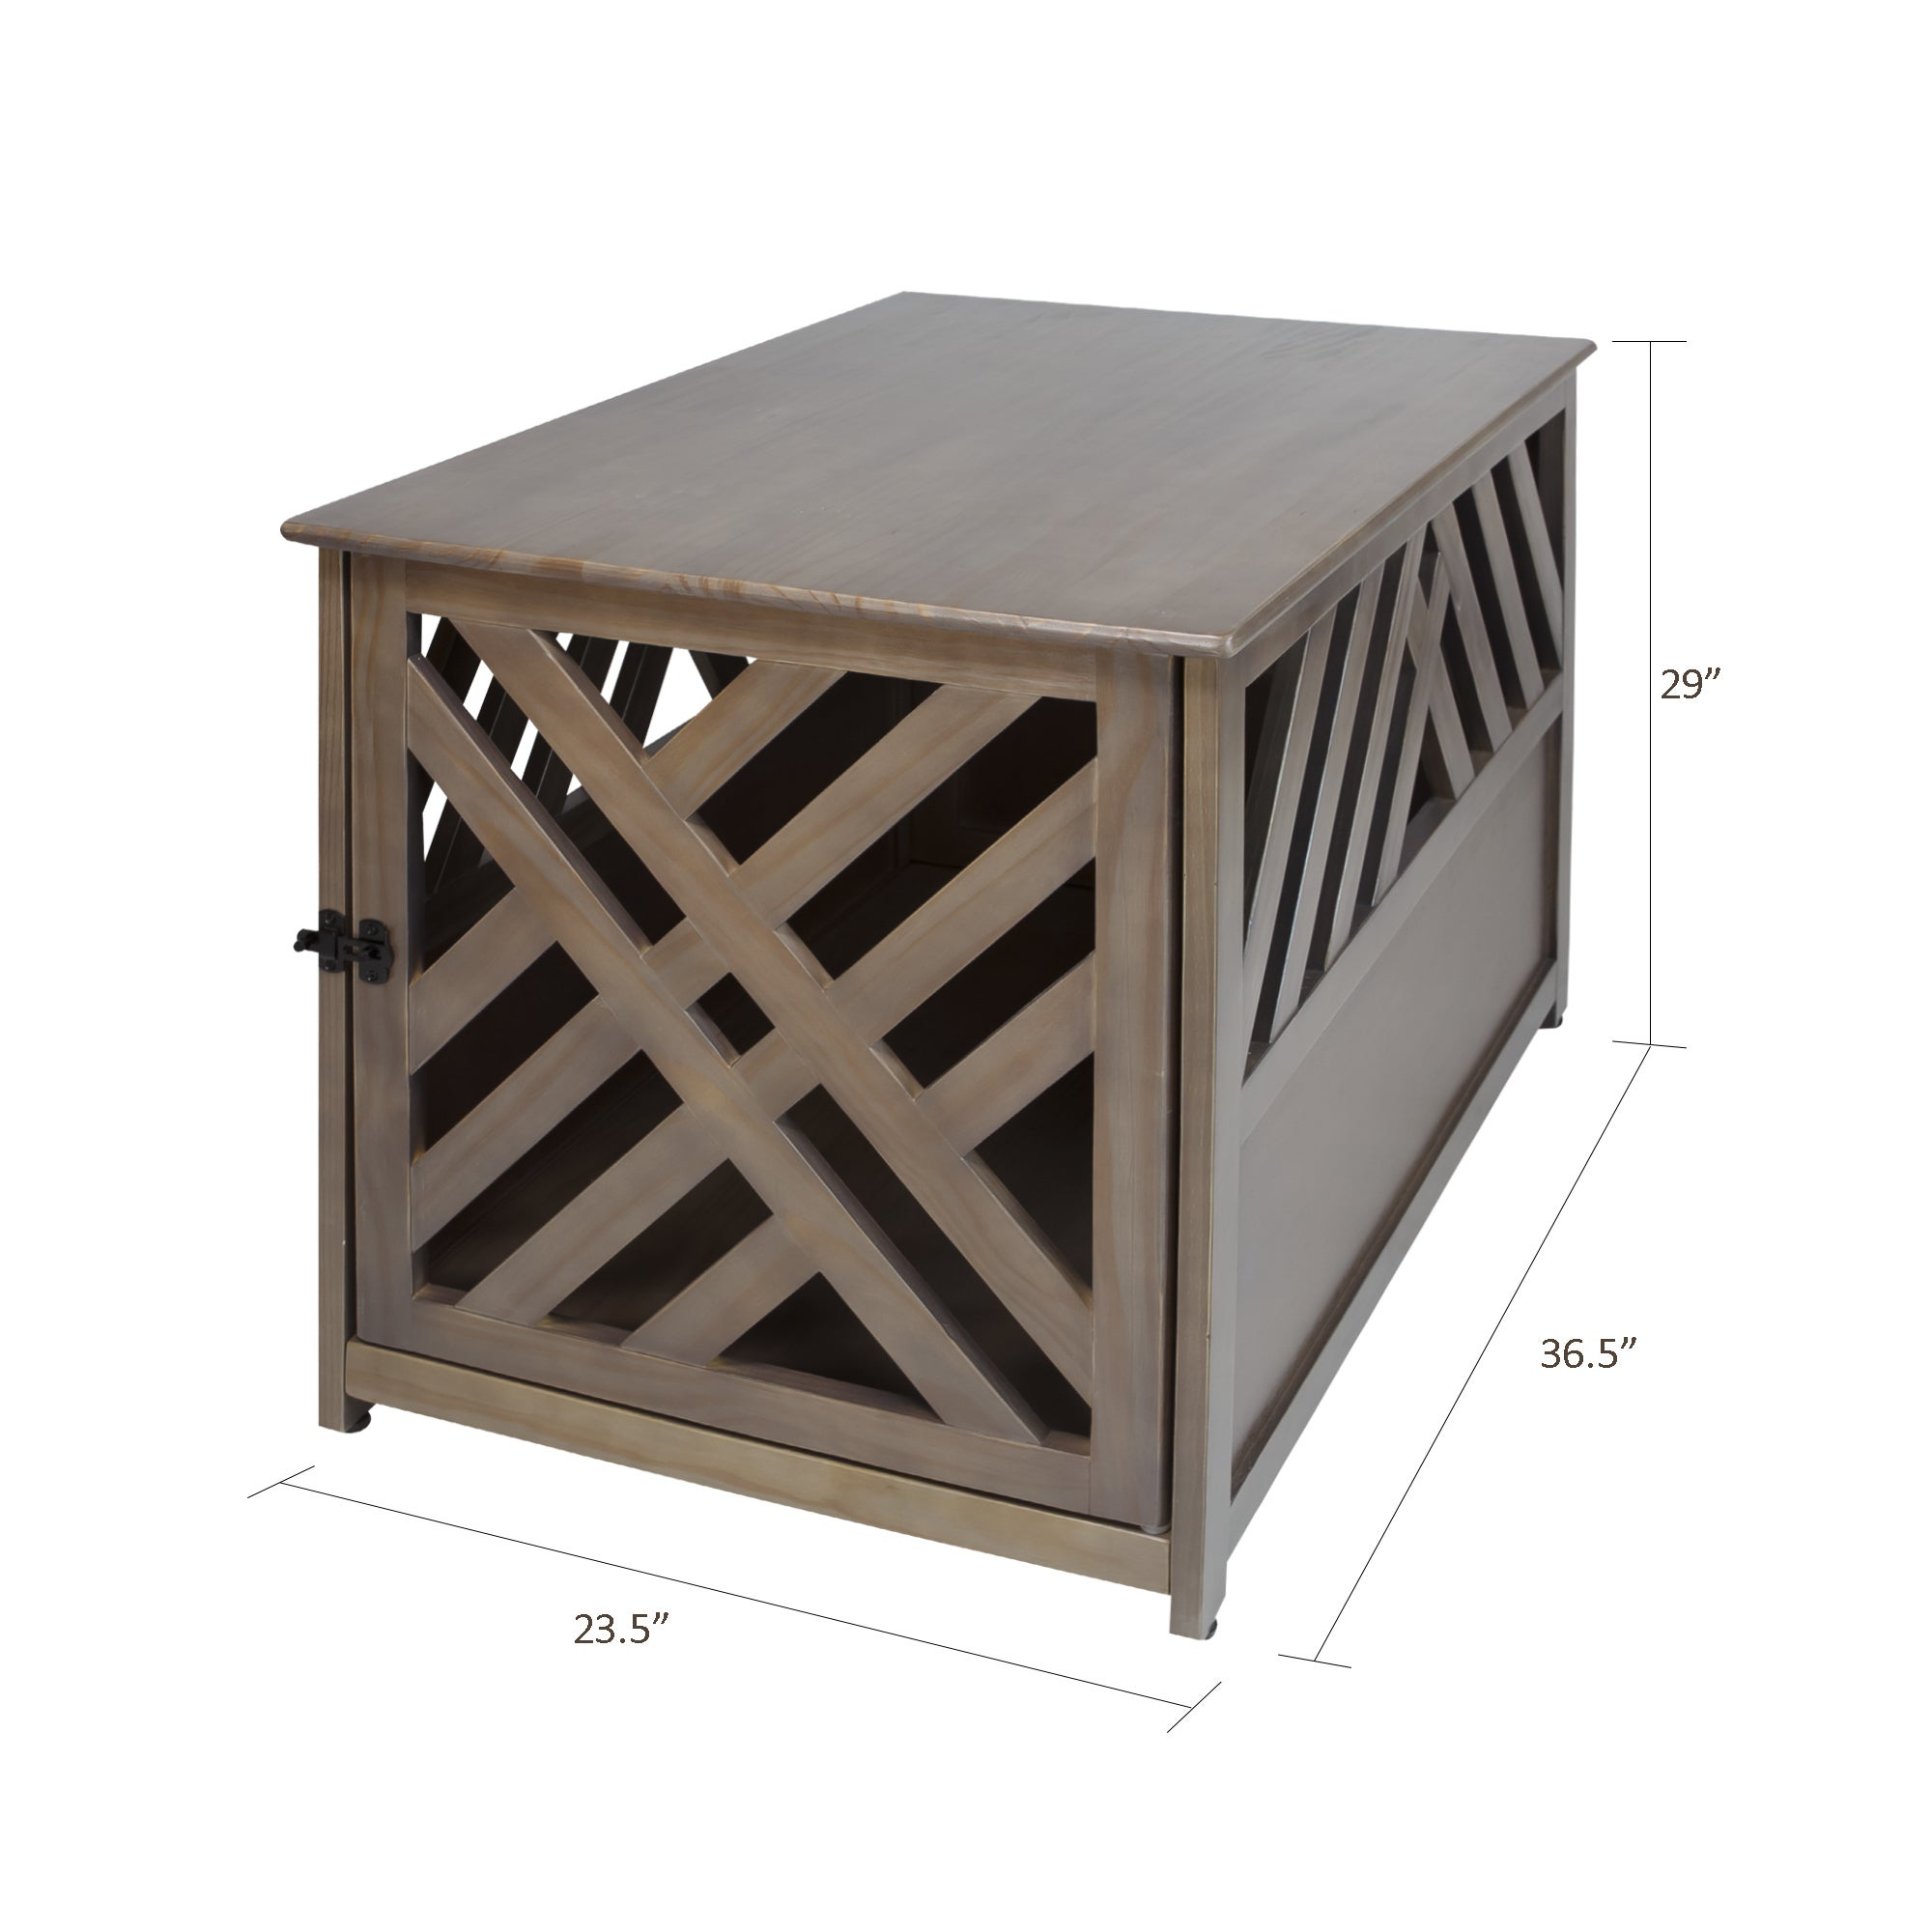 the gray barn haney jardine lattice grey wooden pet crate end modern table dog free shipping today mainstays office chair instructions sofa whole laura ashley beds small outdoor